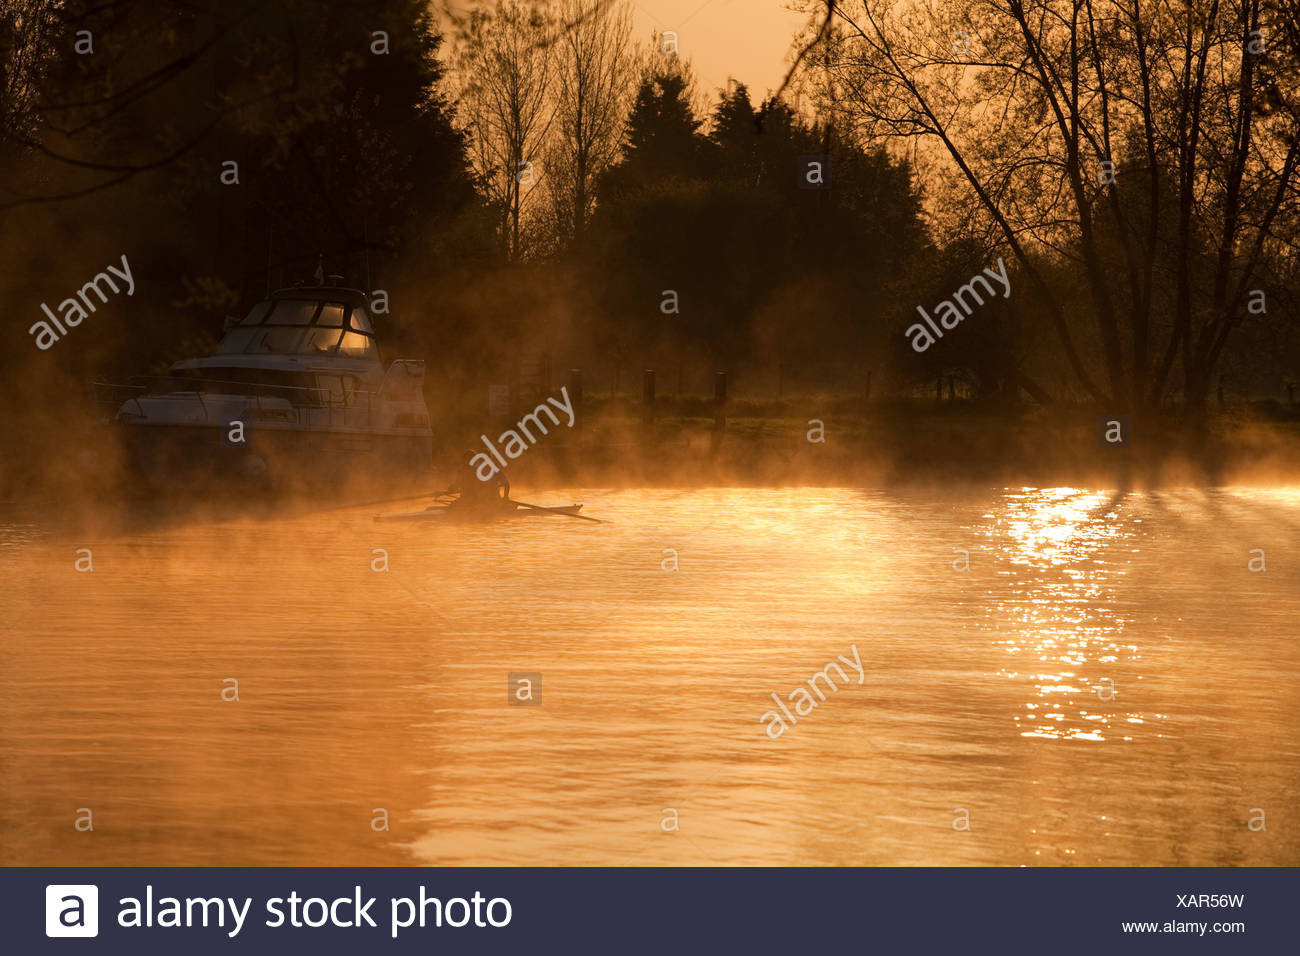 Rowers on the River Thames in the dawn mist at Sonning, Berkshire, Uk - Stock Image